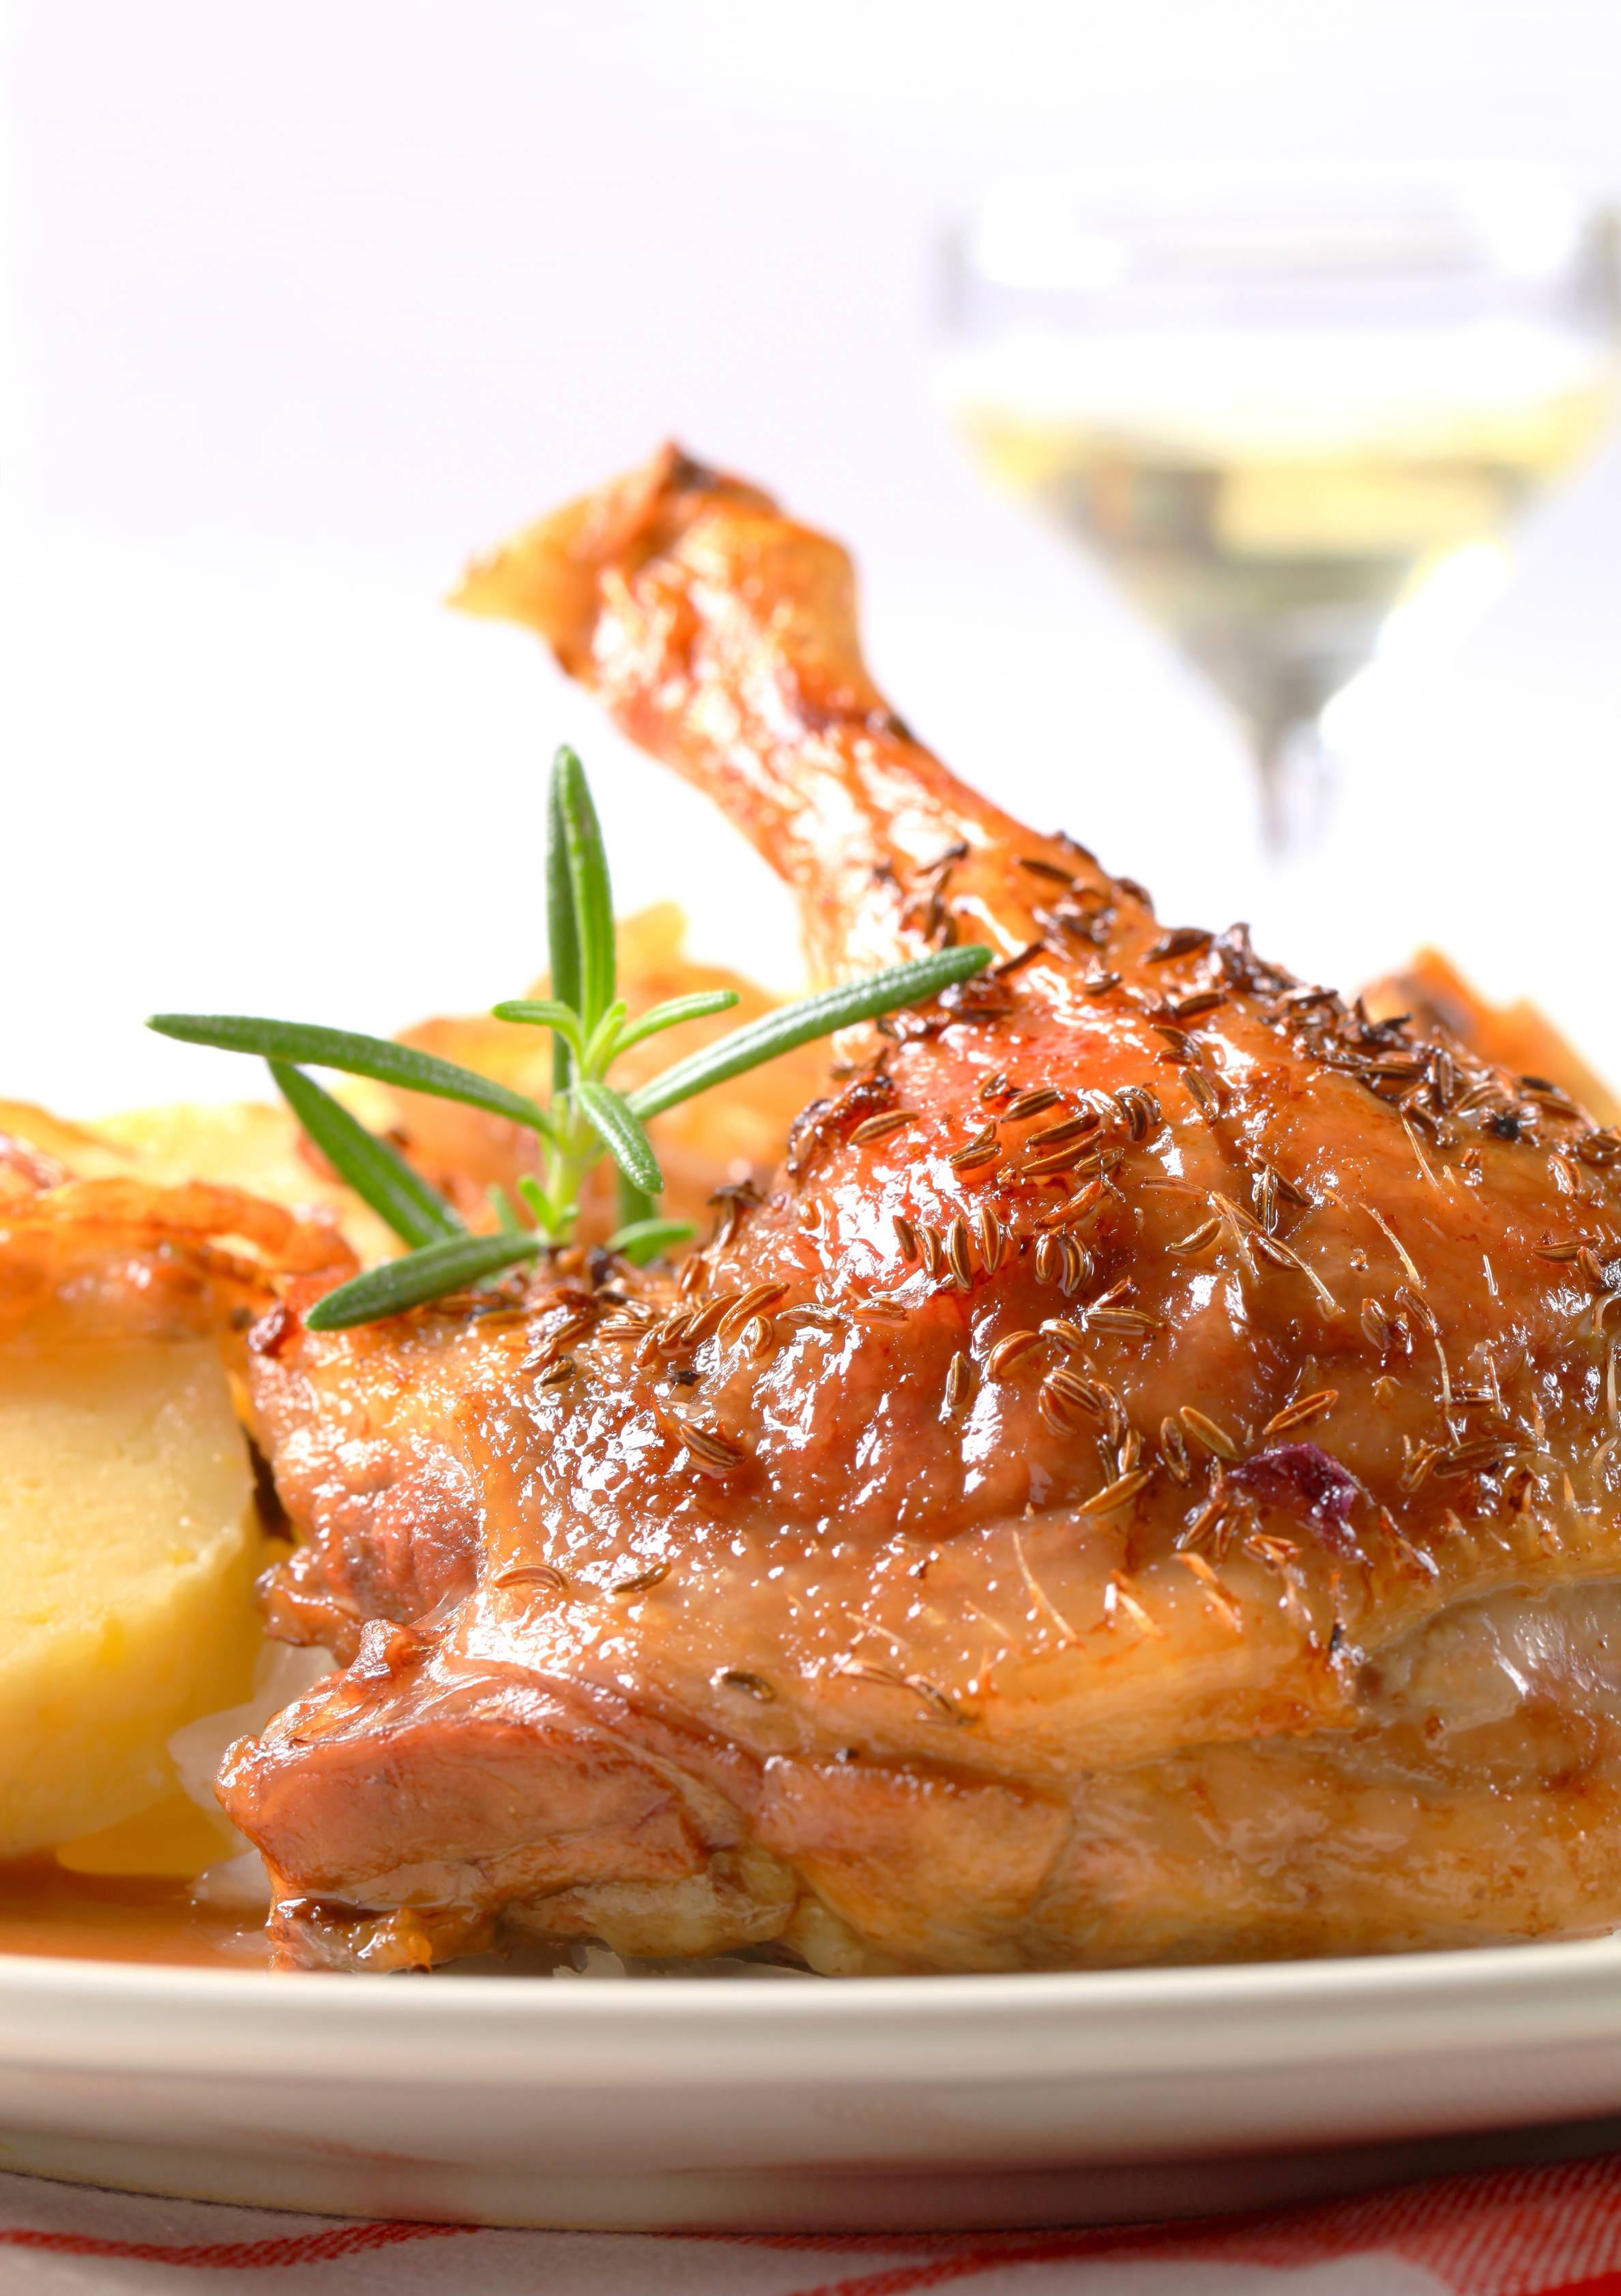 Roast duck with potato dumplings